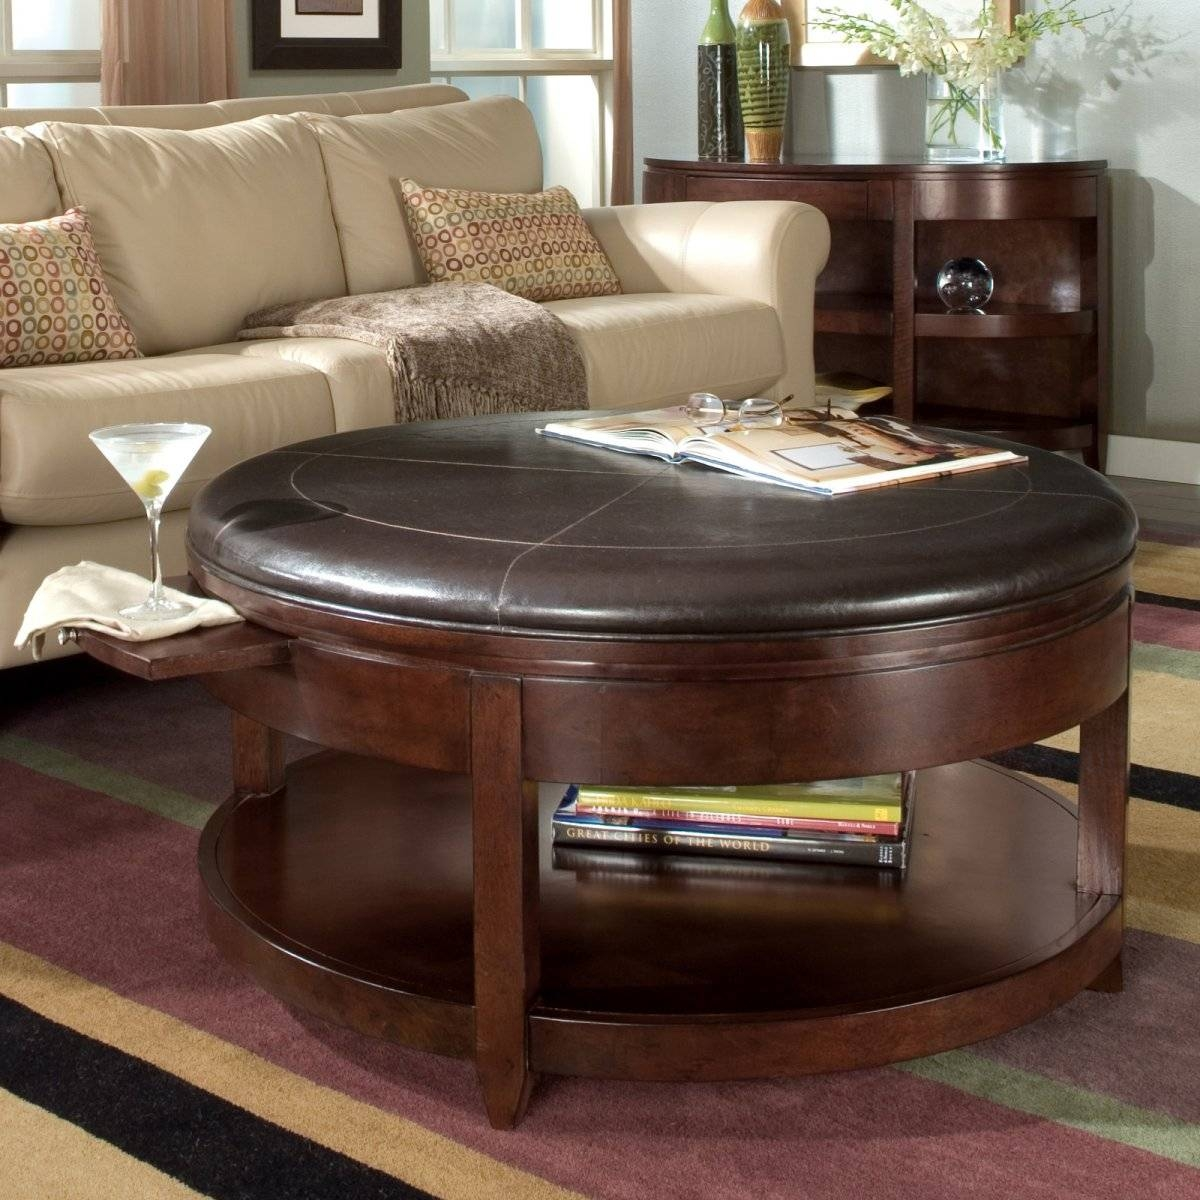 Choosing A Wonderful Oversized Coffee Table | Home Furniture And Decor with regard to Oversized Round Coffee Tables (Image 2 of 30)